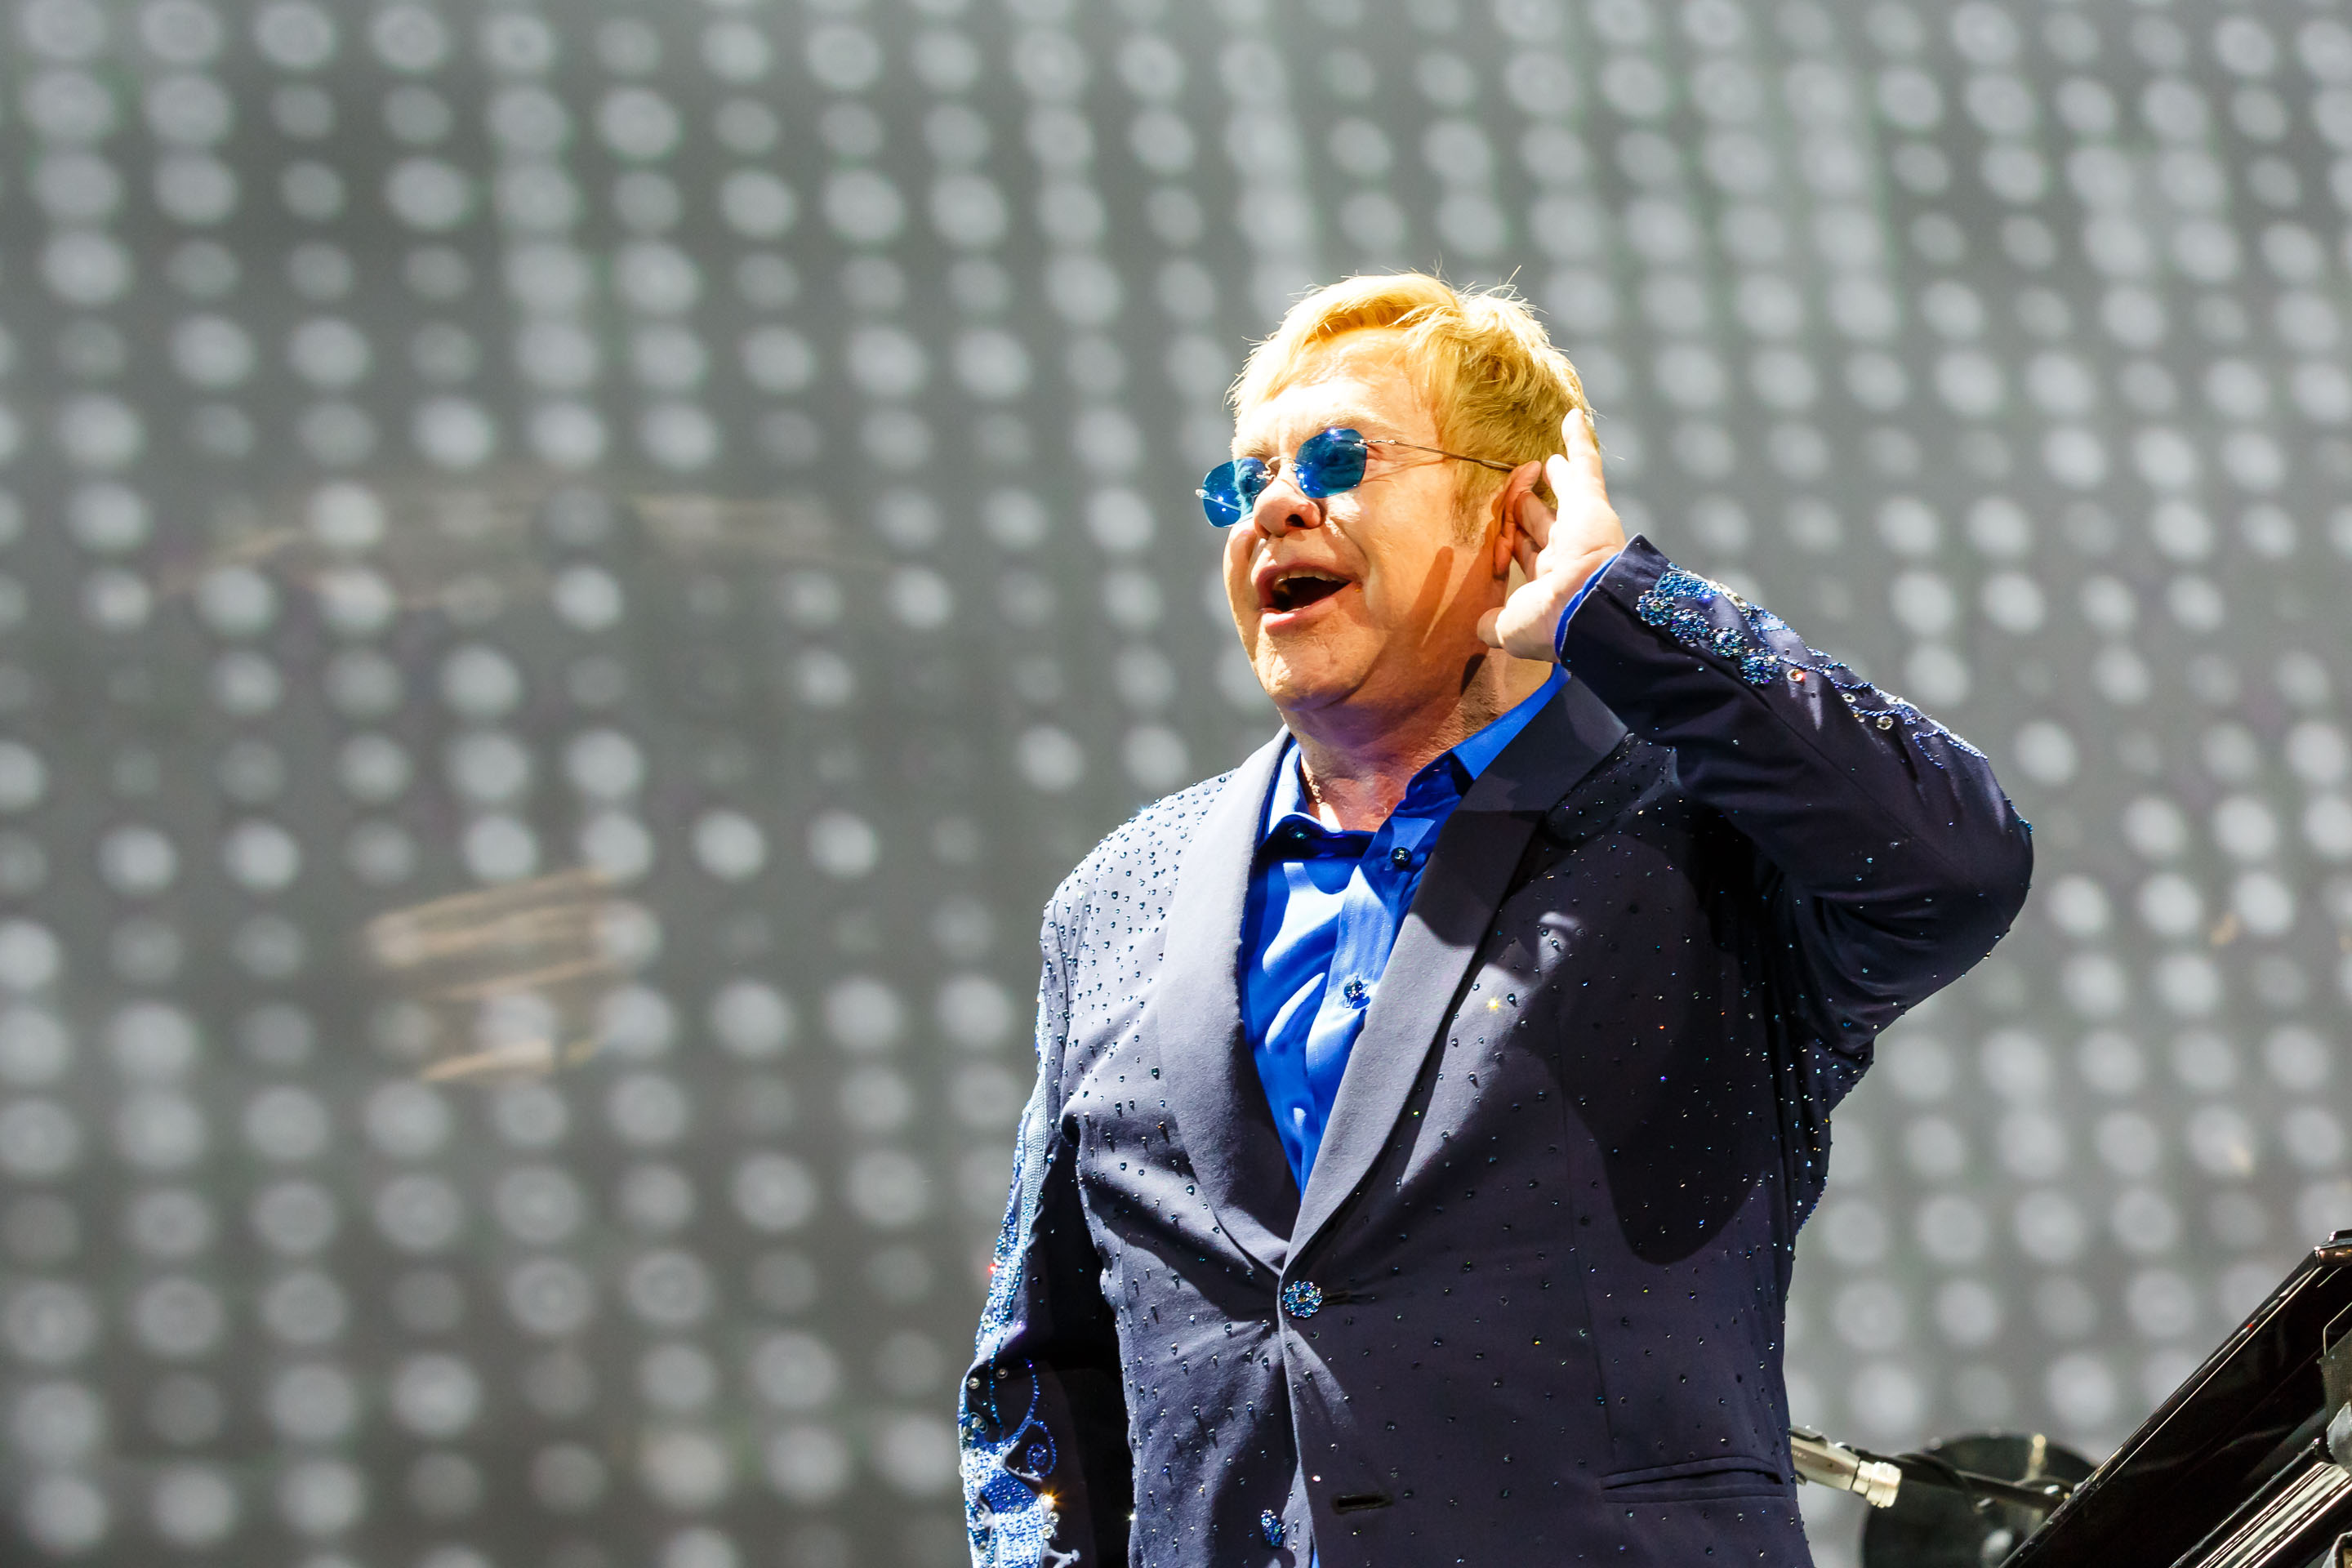 20160224200432 9769 IBM INTERCONNECT 2016 ELTON JOHN